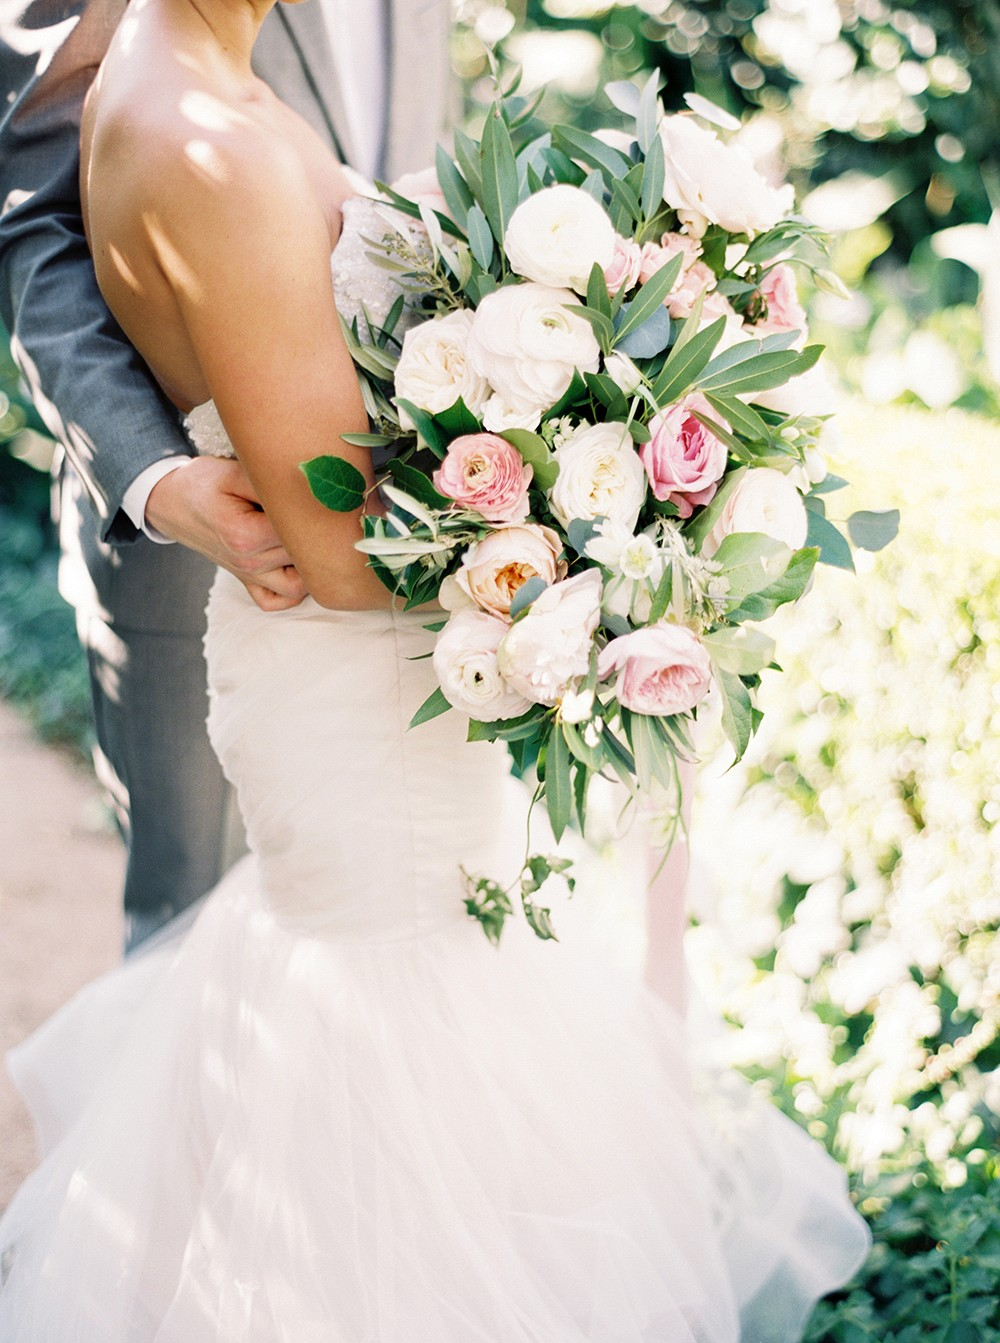 Jessica and JJ's Sophisticated Blush Wedding in Texas